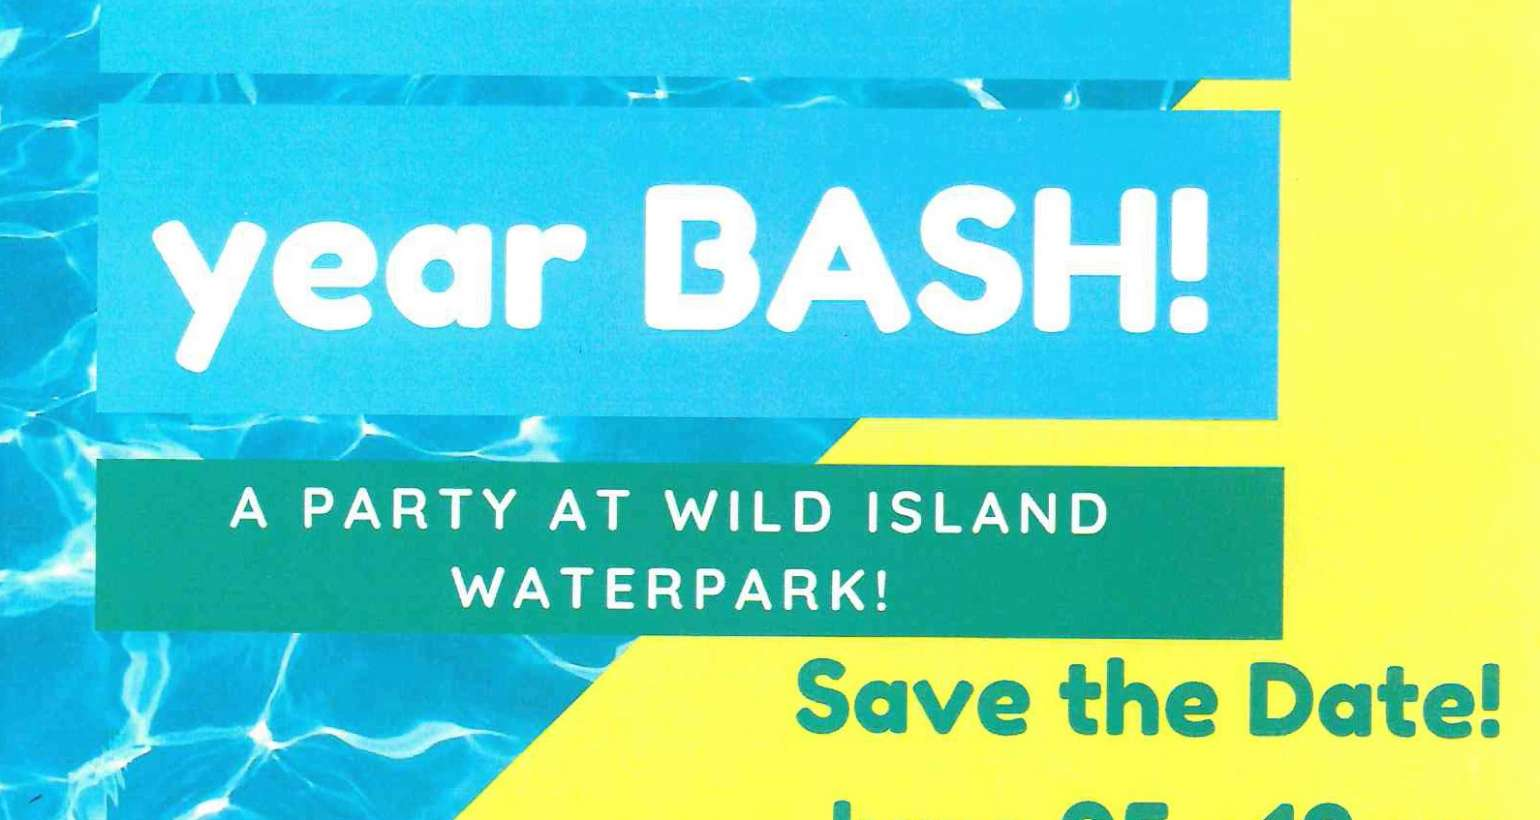 End of the Year Bash!